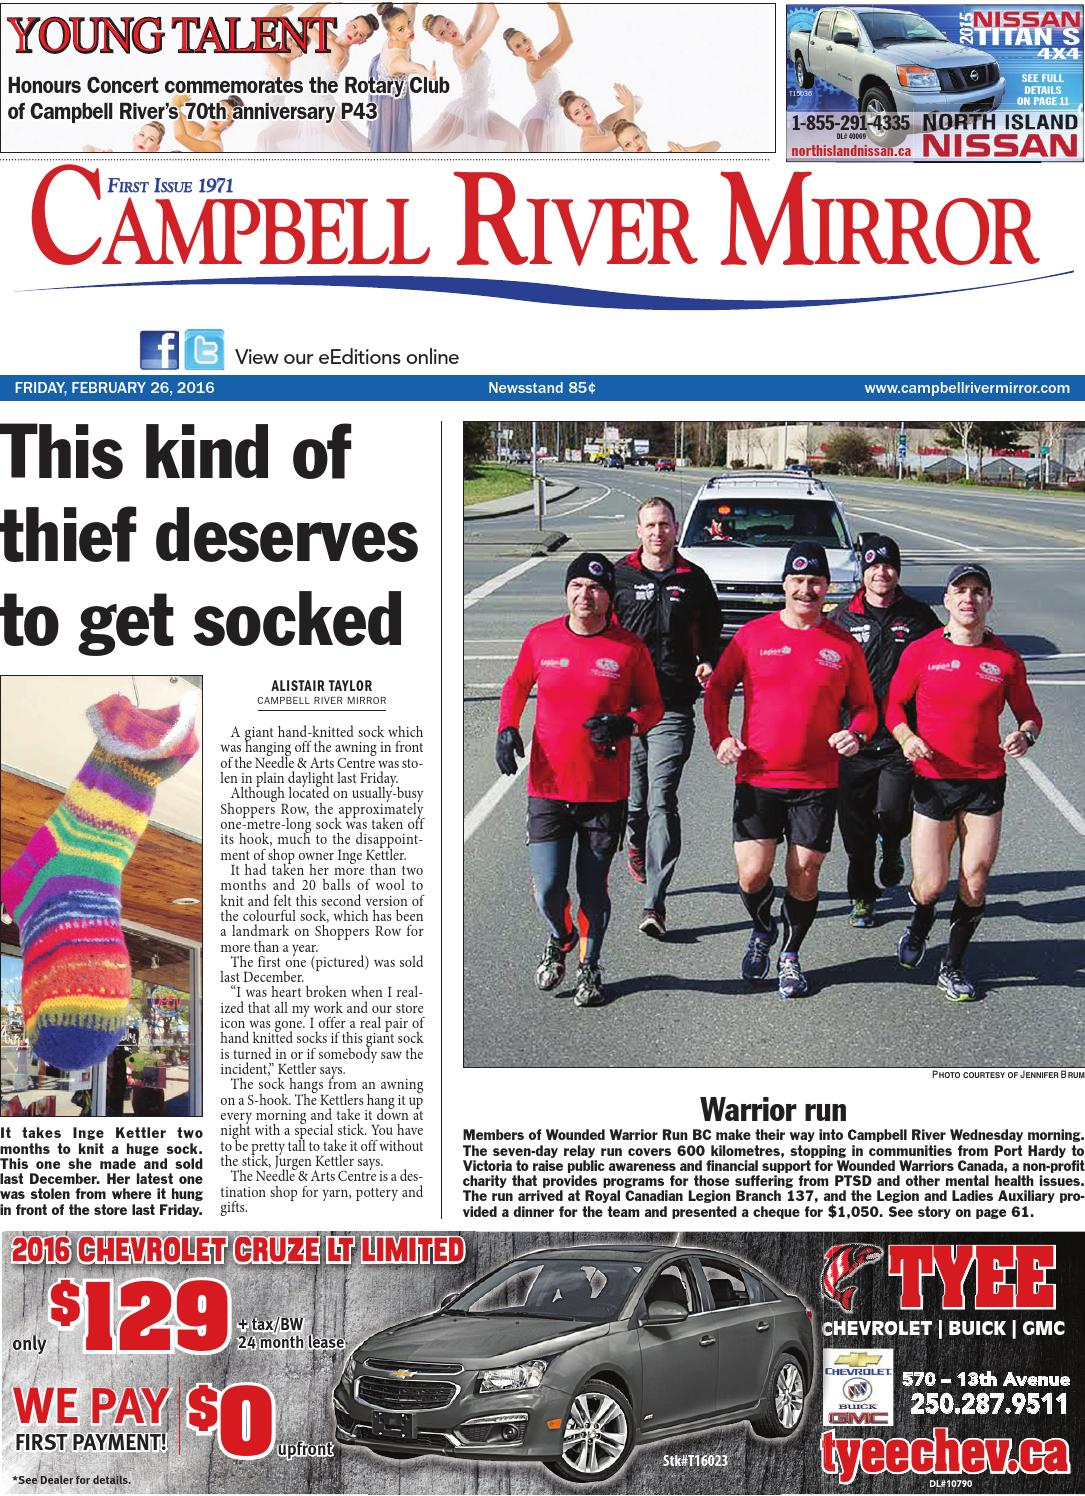 Nissan Campbell River >> Campbell River Mirror, February 26, 2016 by Black Press - issuu